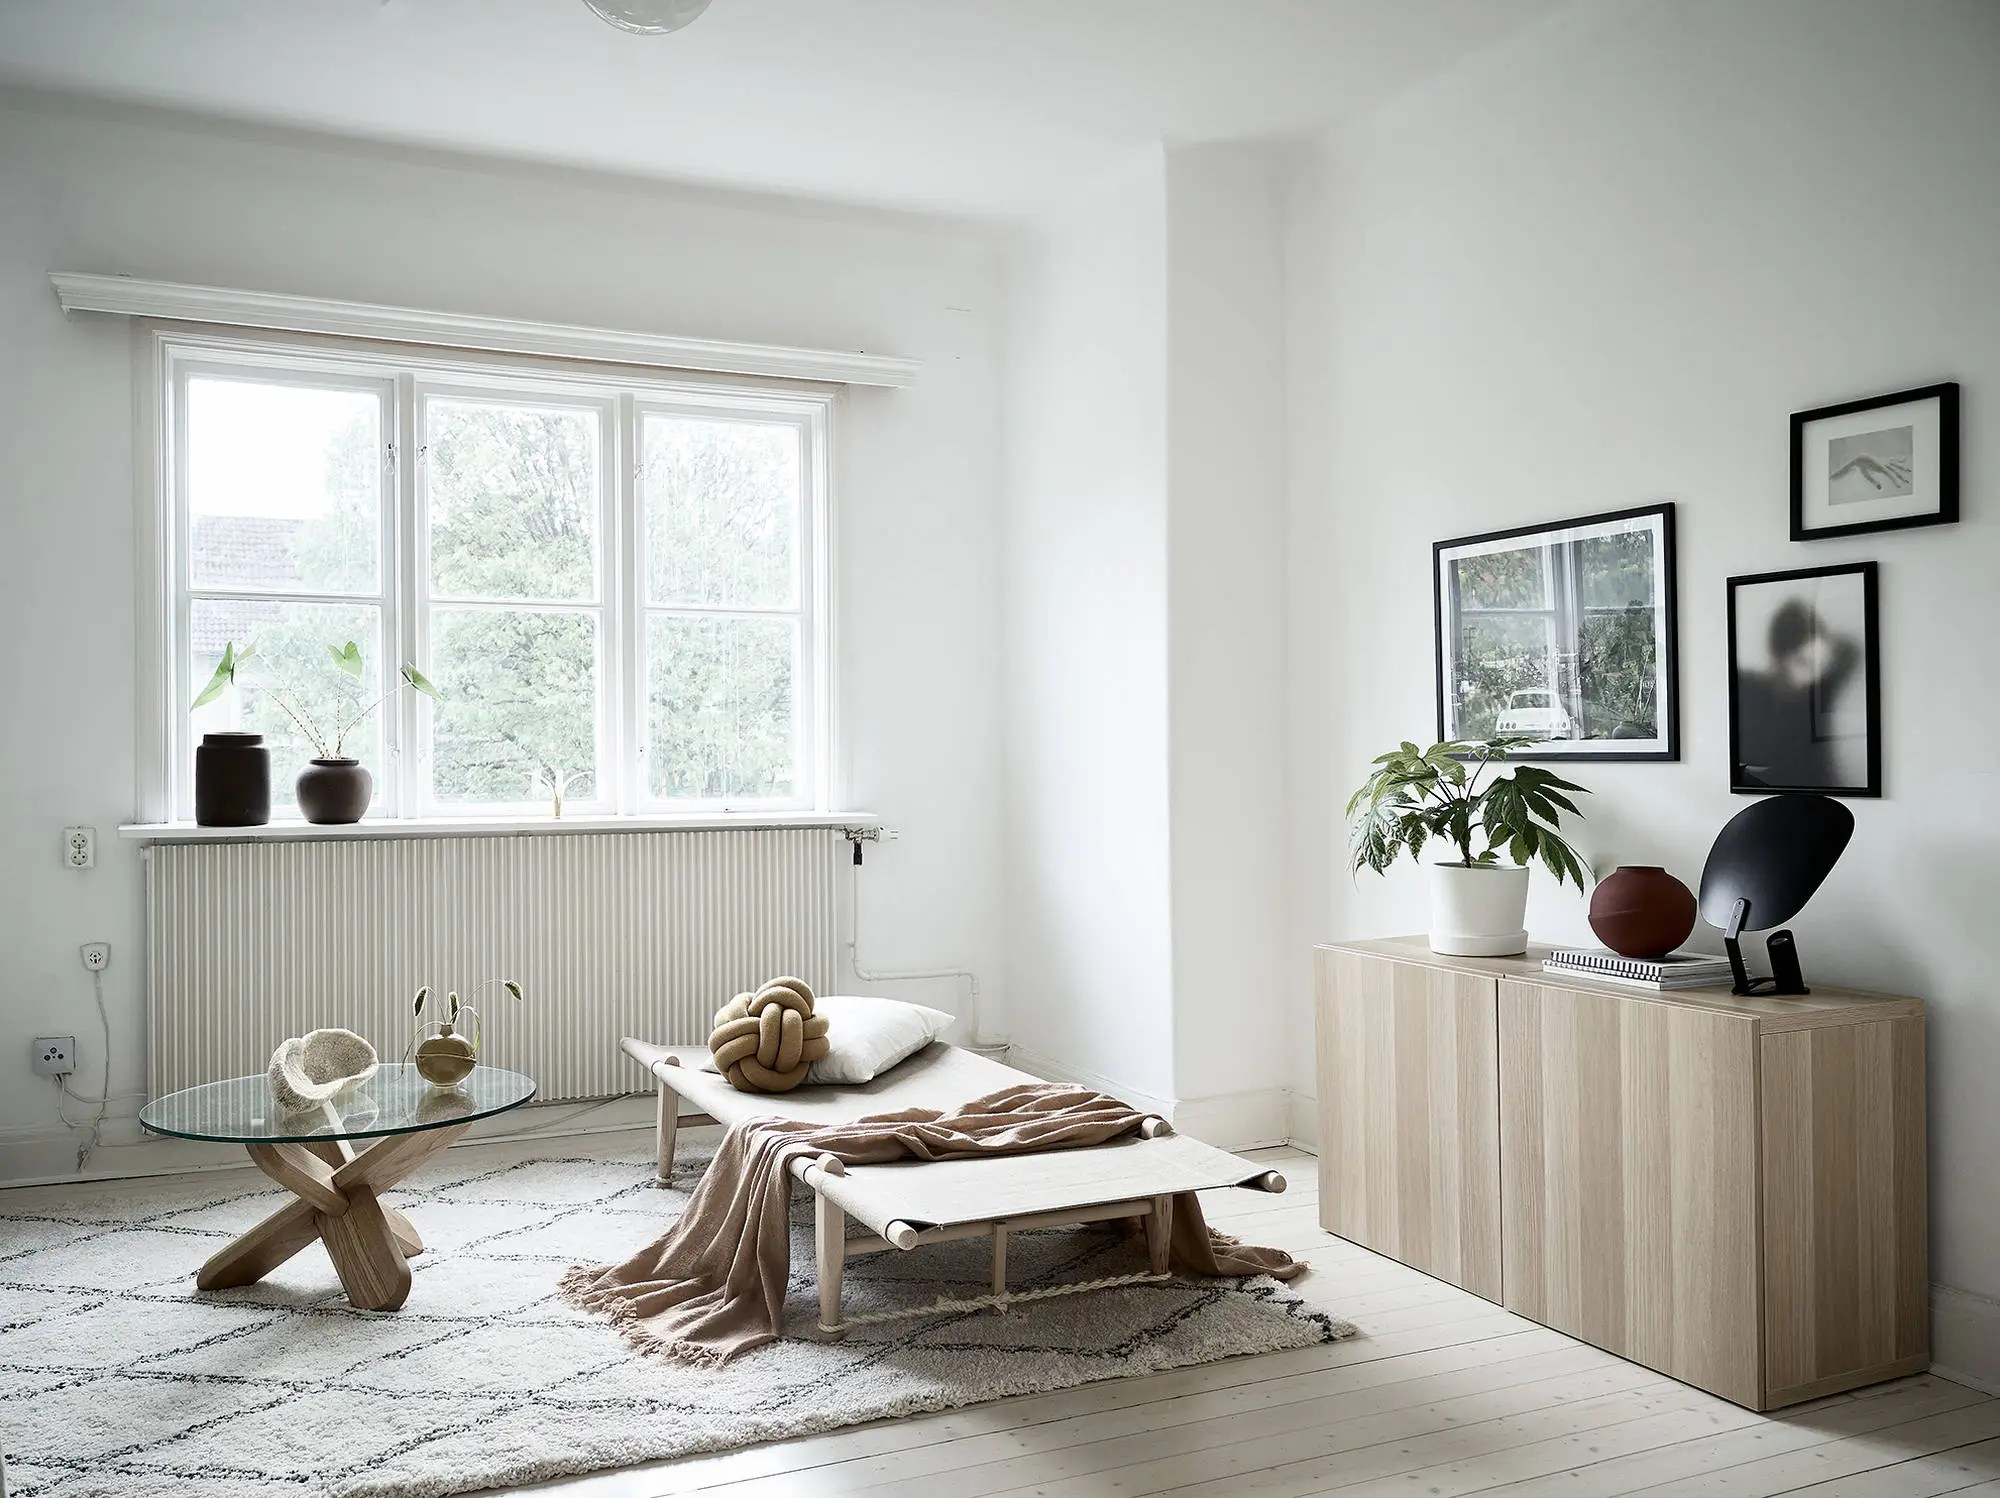 Minimal living room in natural colors  COCO LAPINE